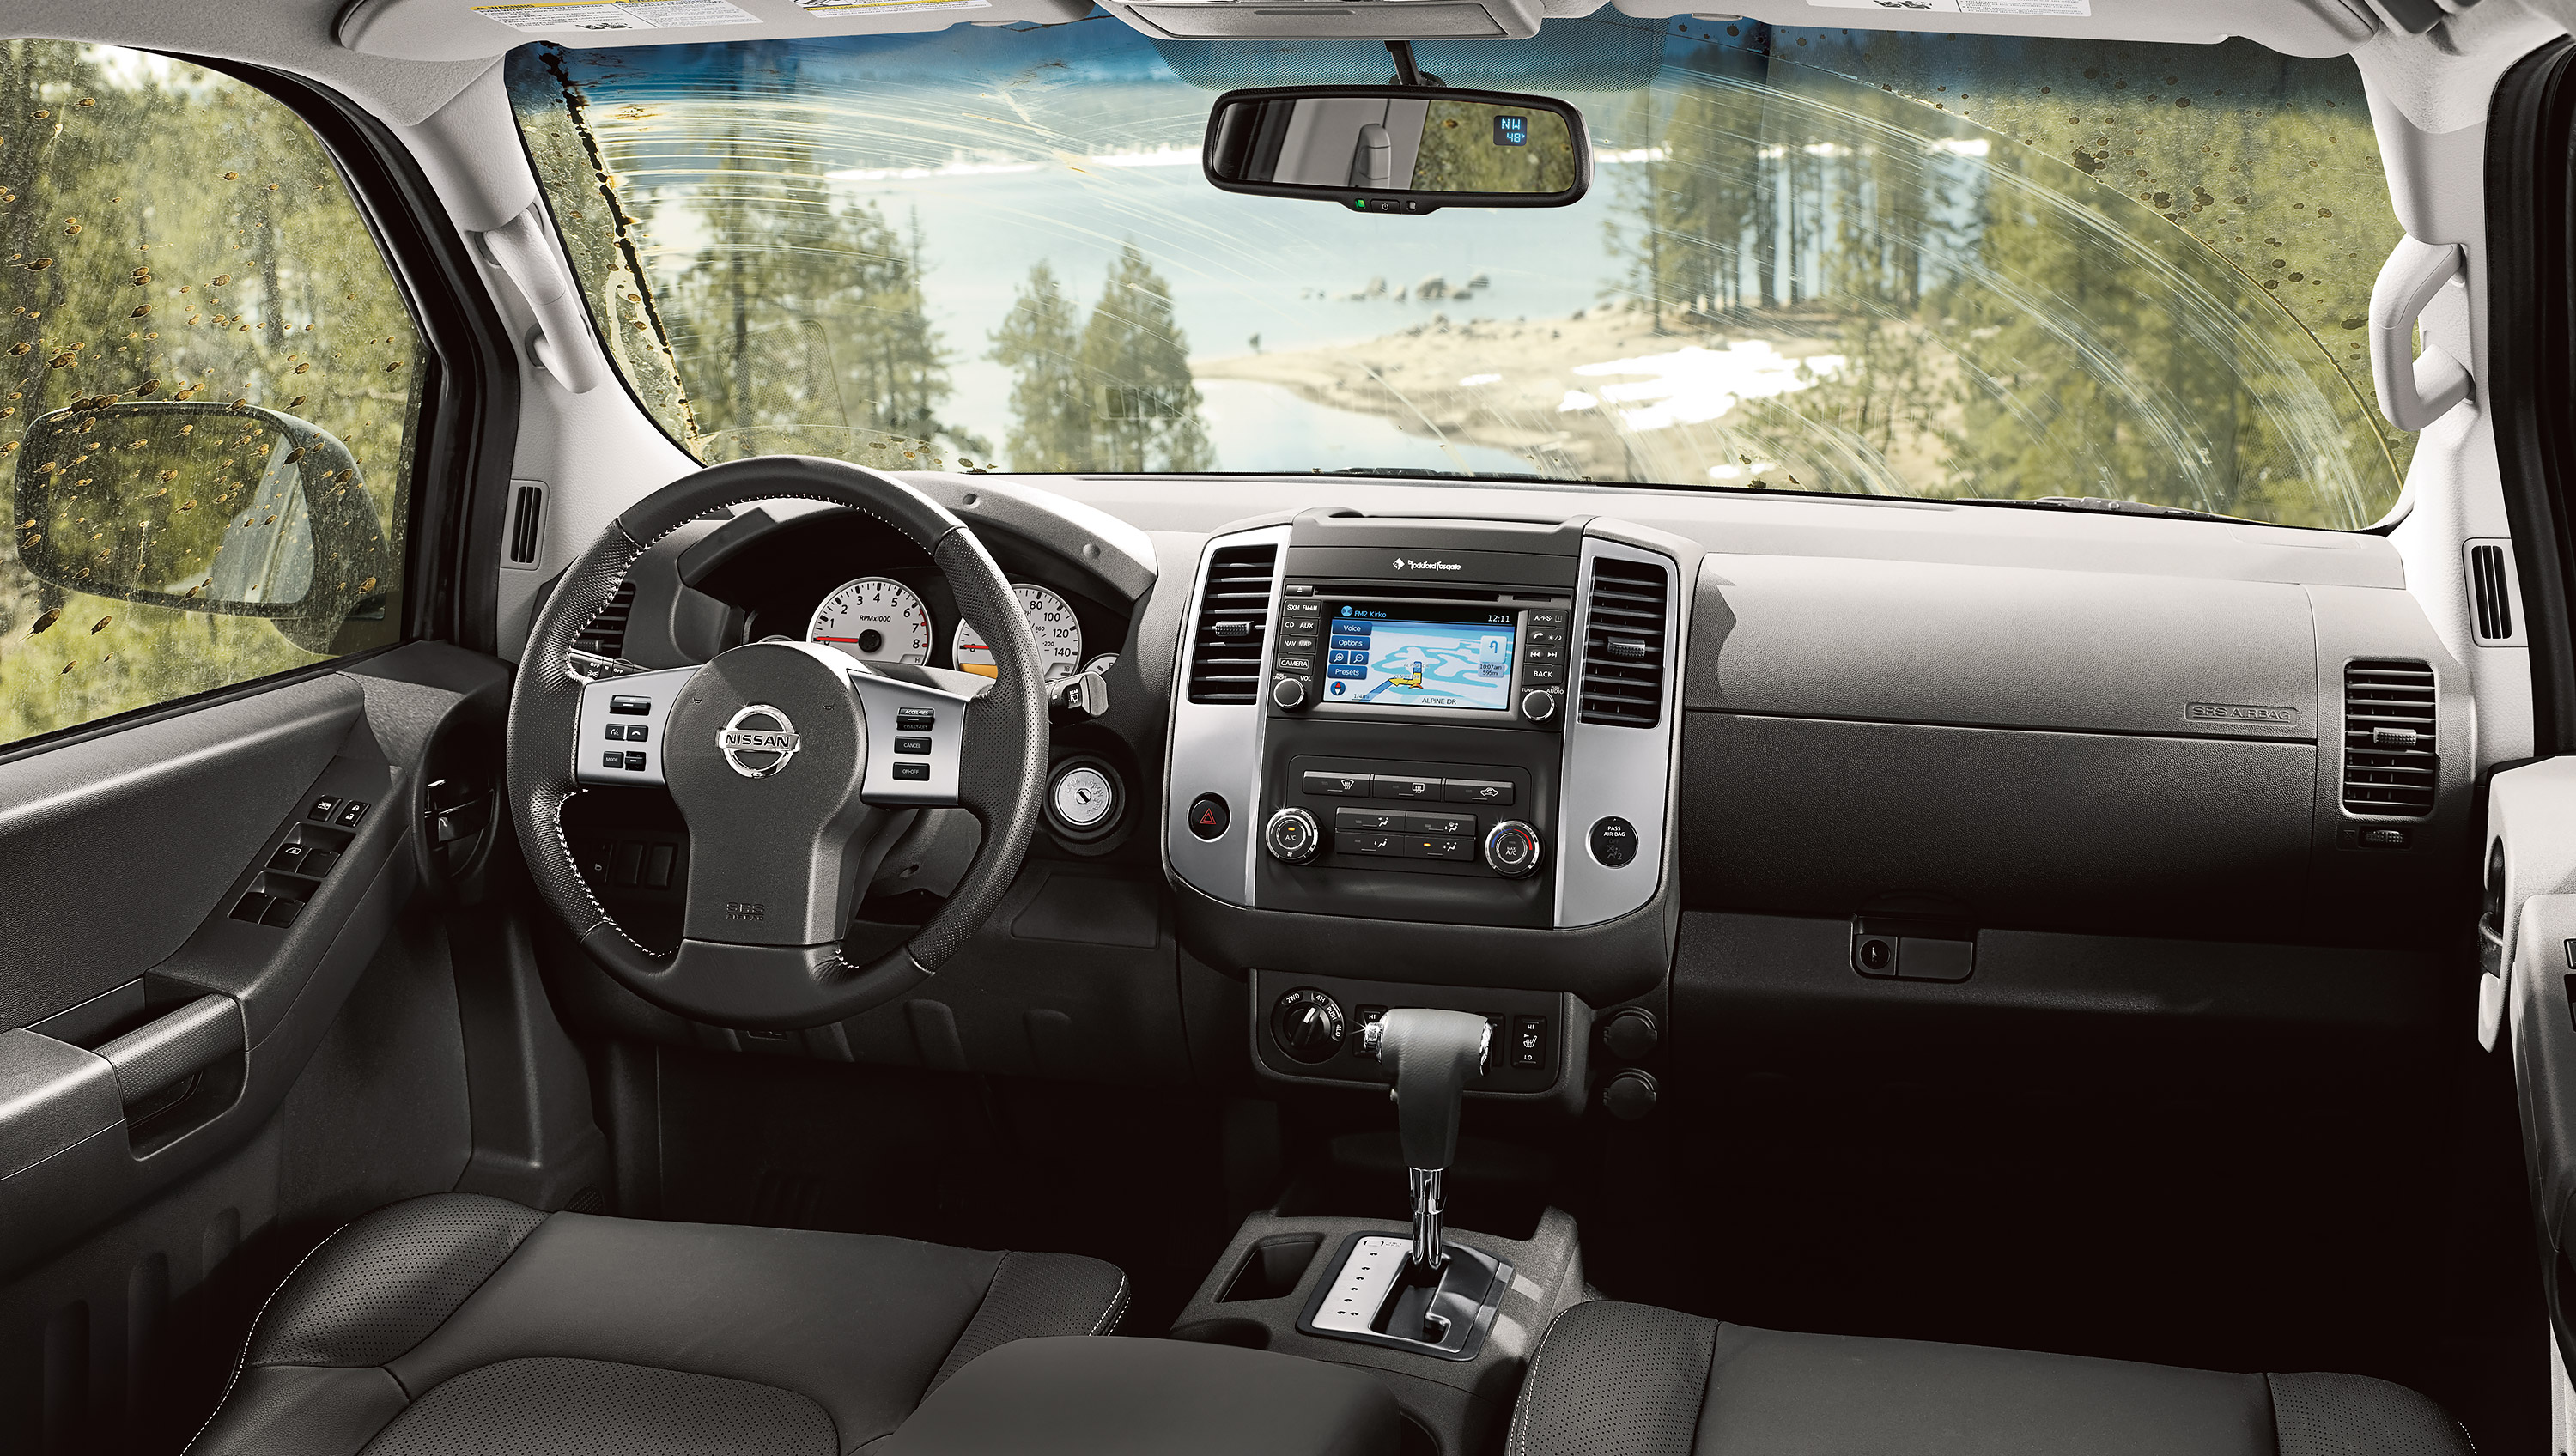 driving test road rapha xterra suv reviews img l nissan pro created review with